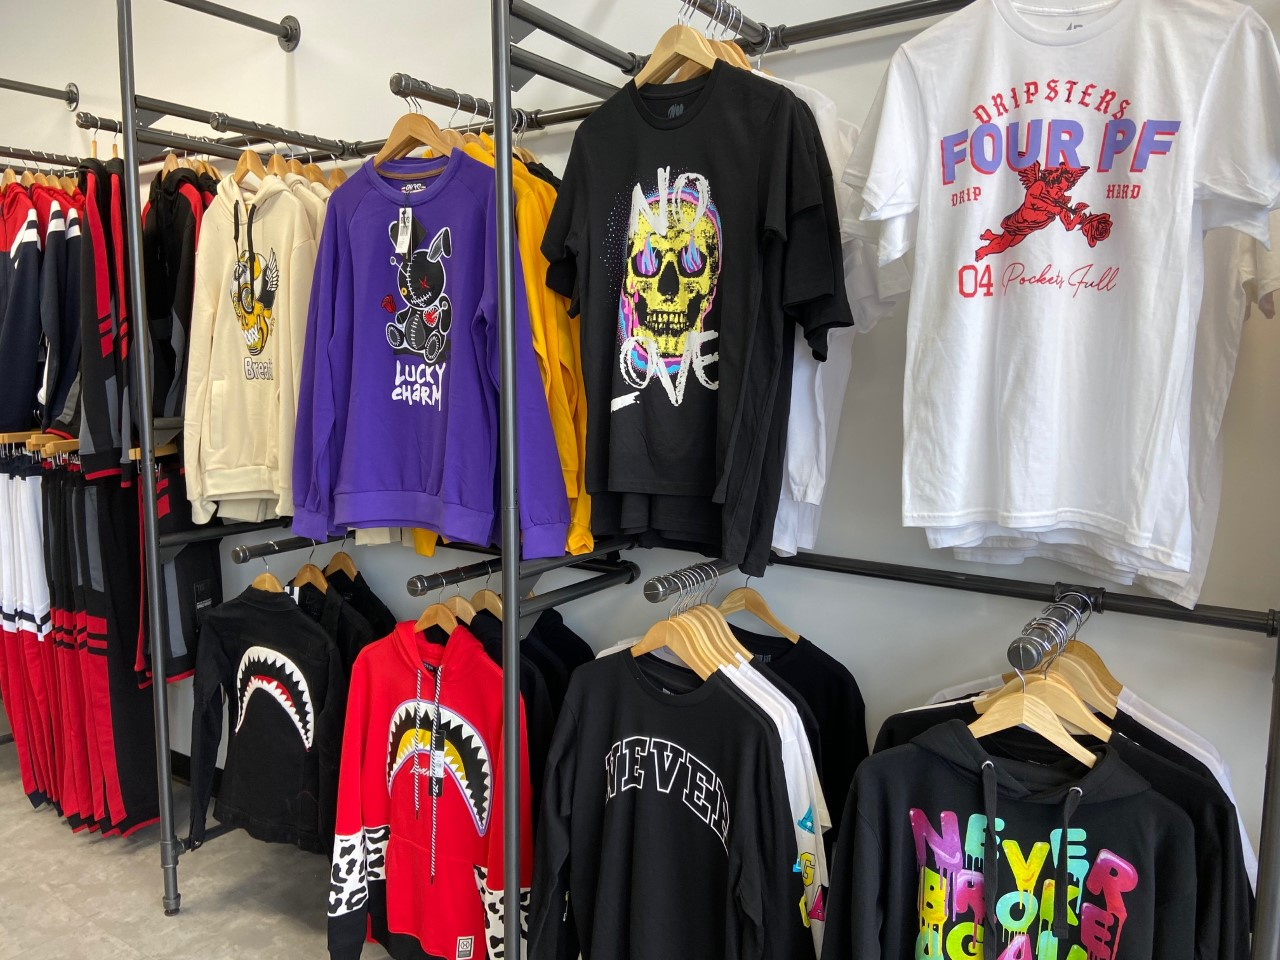 T's and hoodies in lots of styles